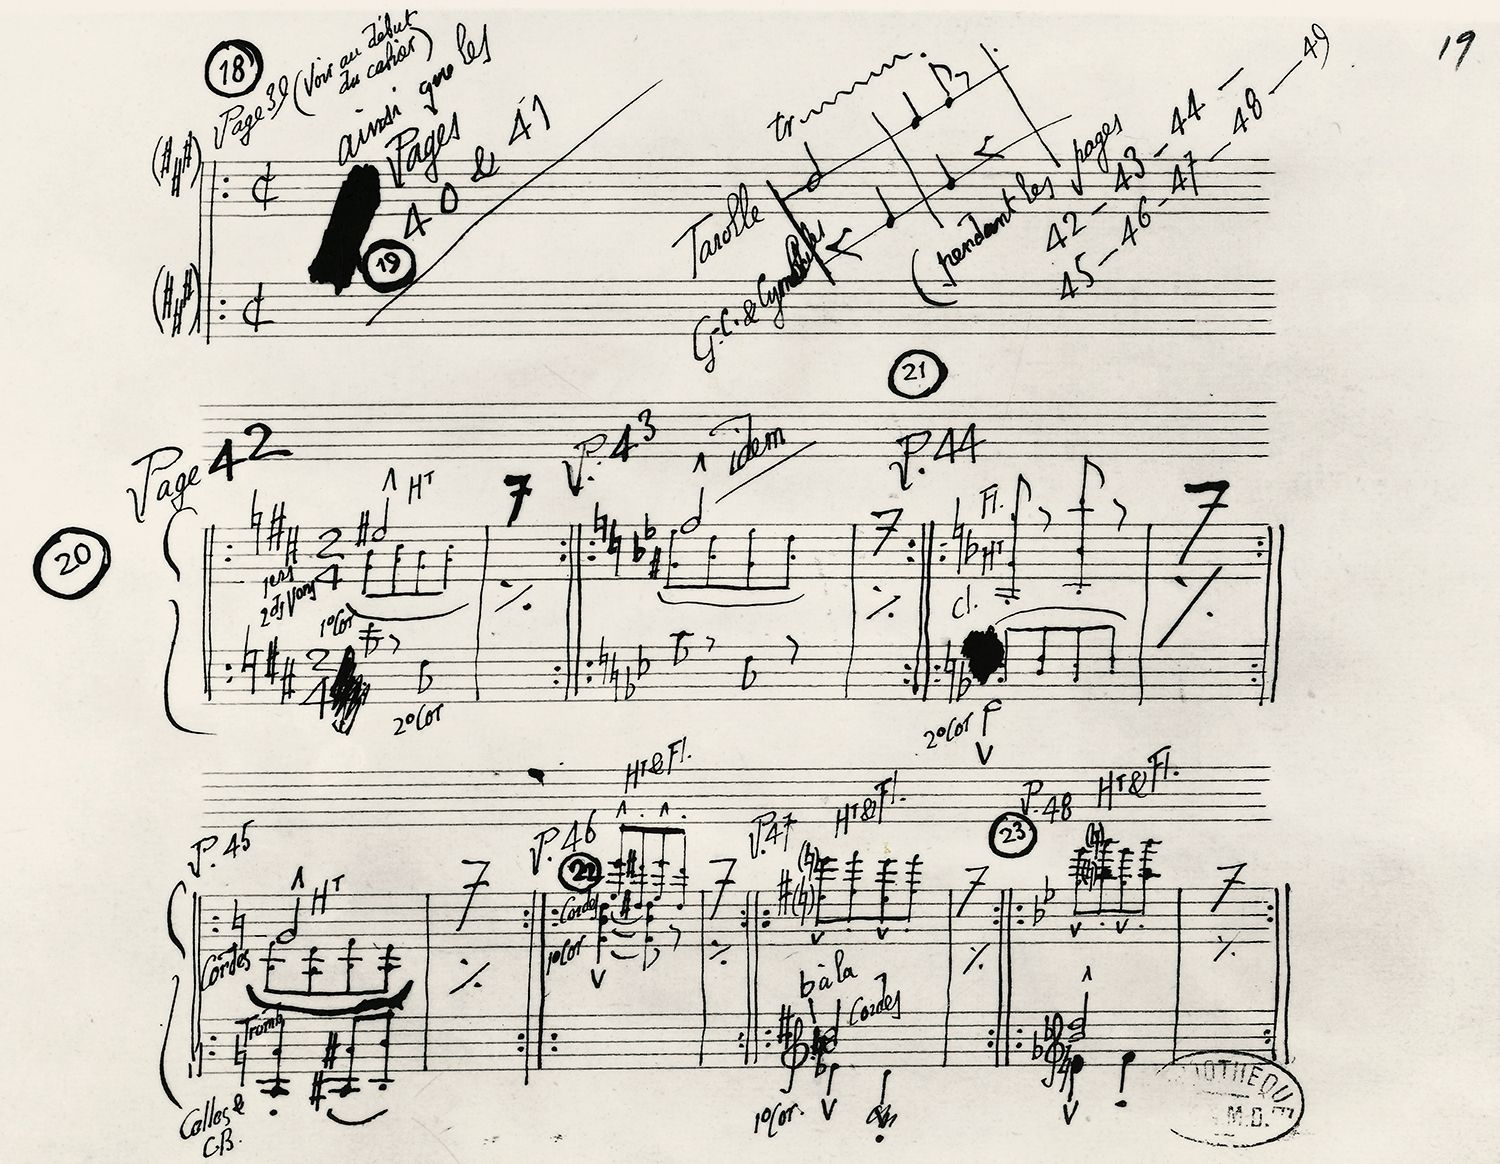 Dotted Notes And Rests Meaning In Music